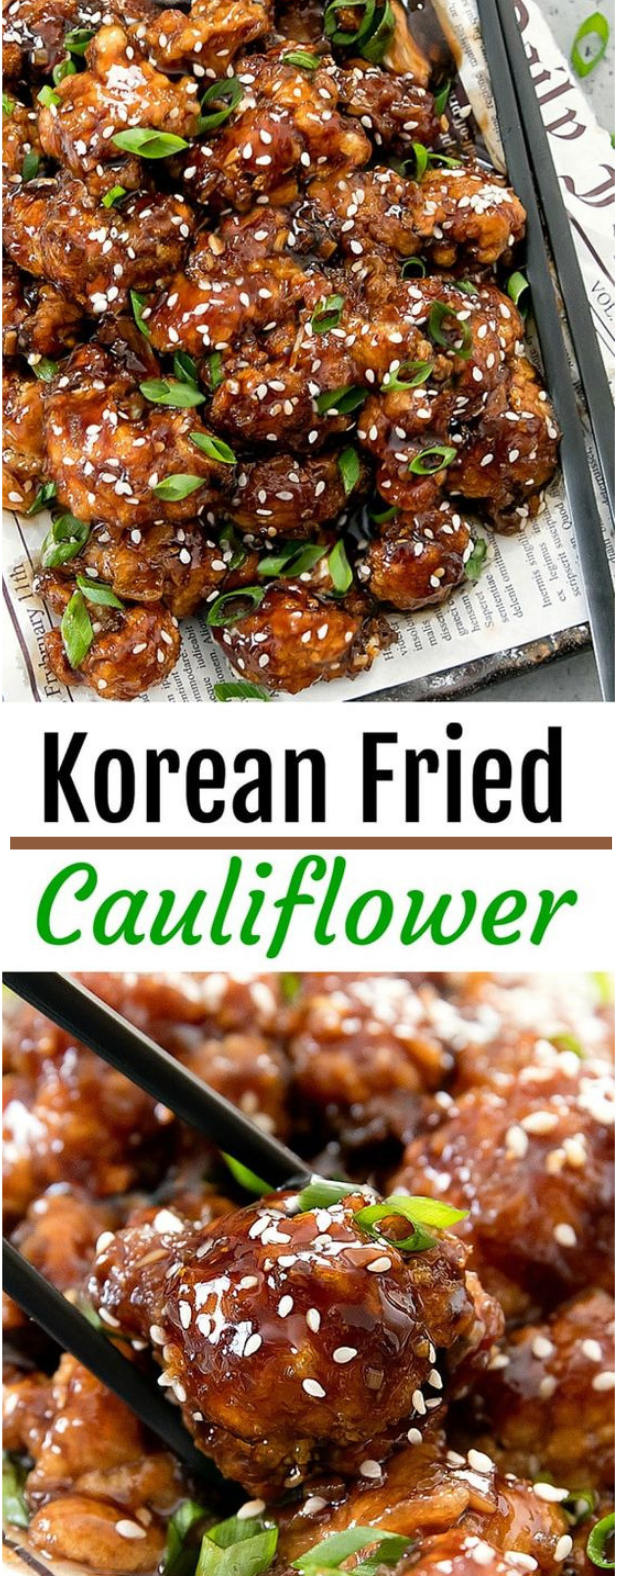 KOREAN FRIED CAULIFLOWER #cauliflower #vegetarian